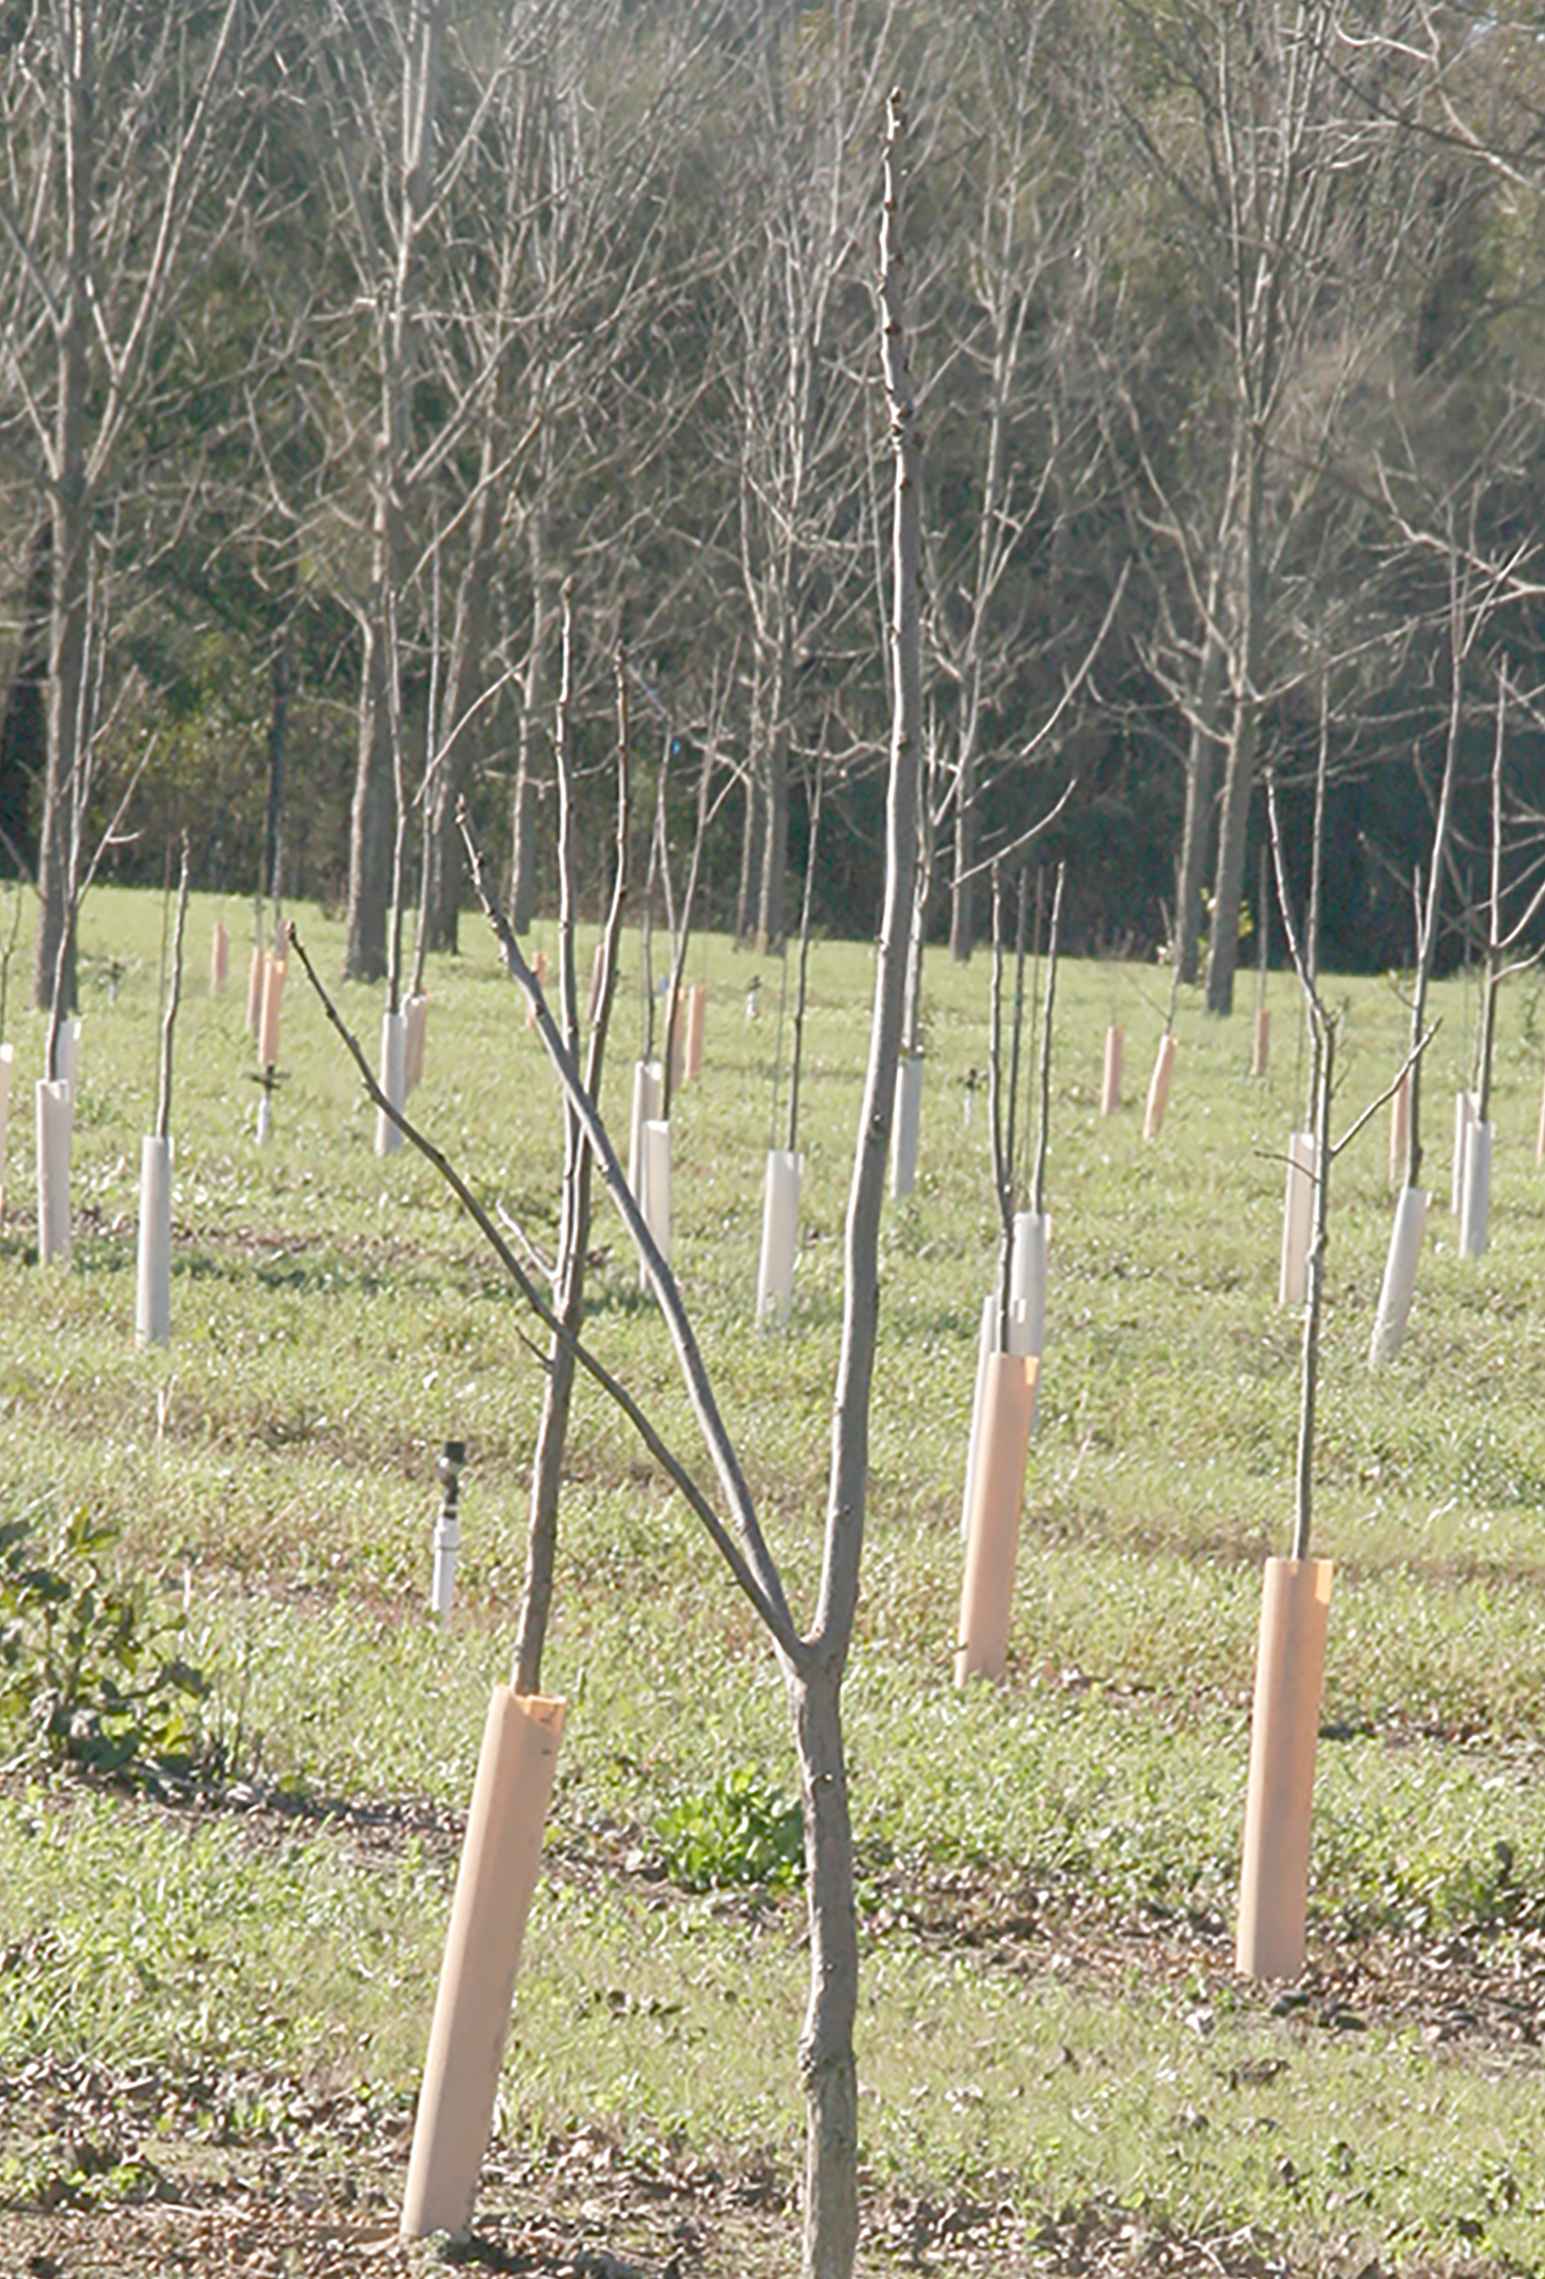 Young, immature pecan trees are seen at the Ponder Farm on the UGA Tifton Campus on Tuesday, Jan. 5, 2016.